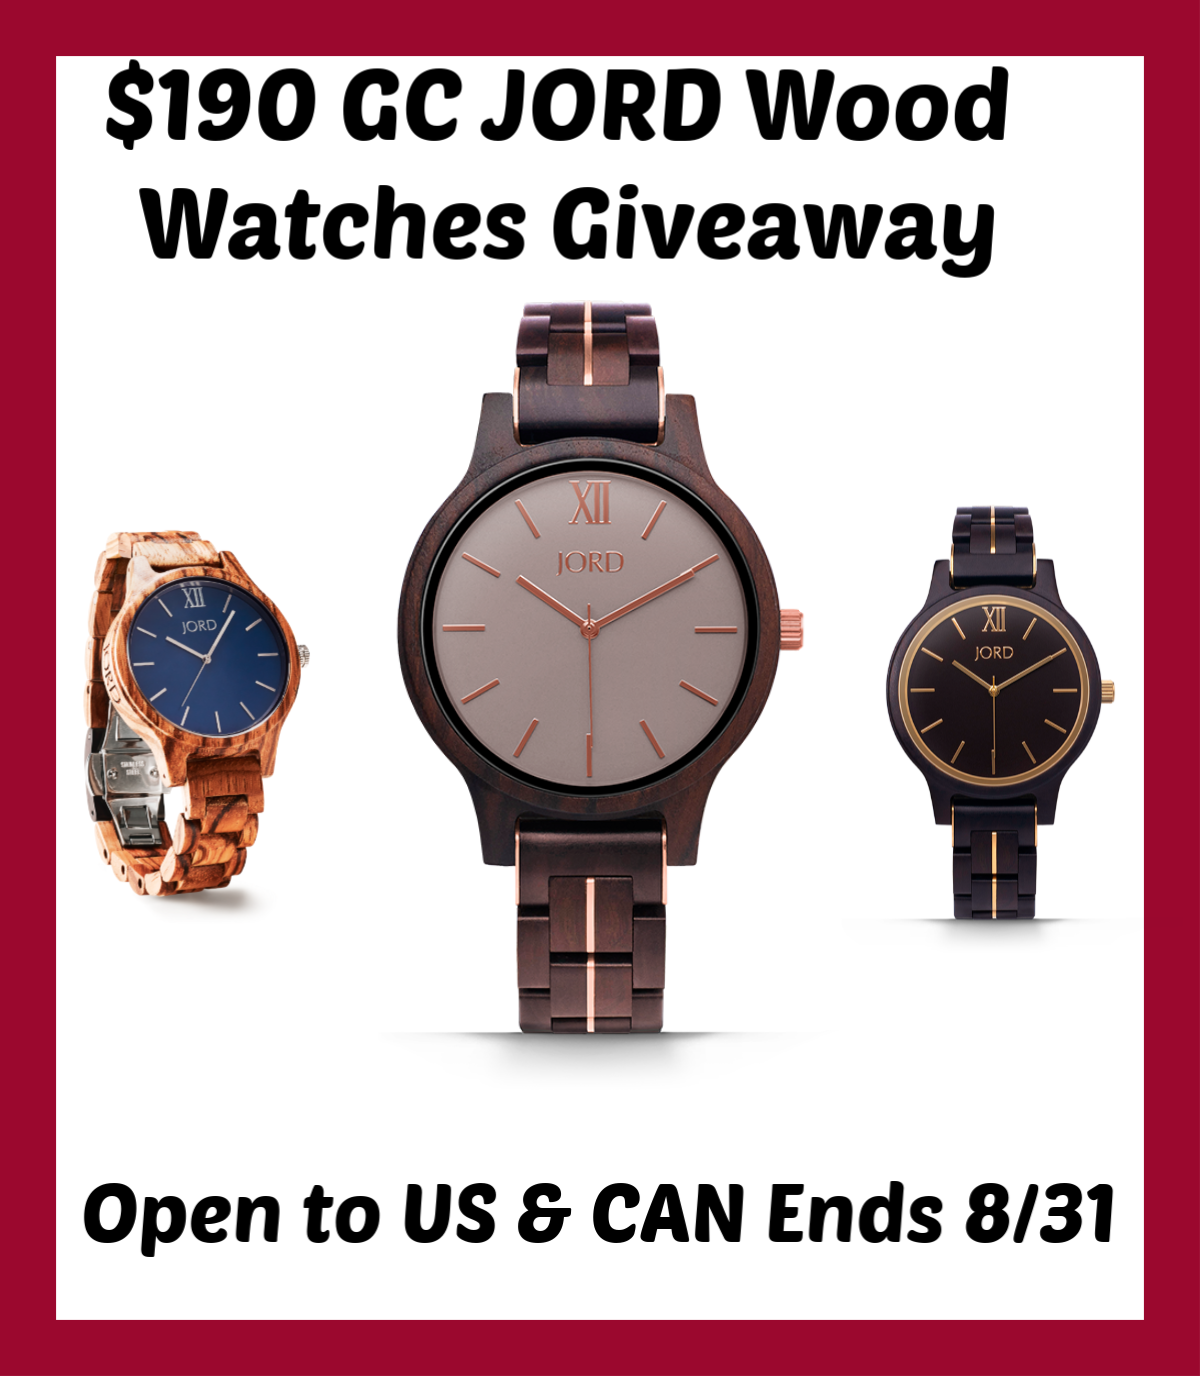 Have you checked your watch recently? It's time to enter to win a $190 JORD Wood Watches gift code here!